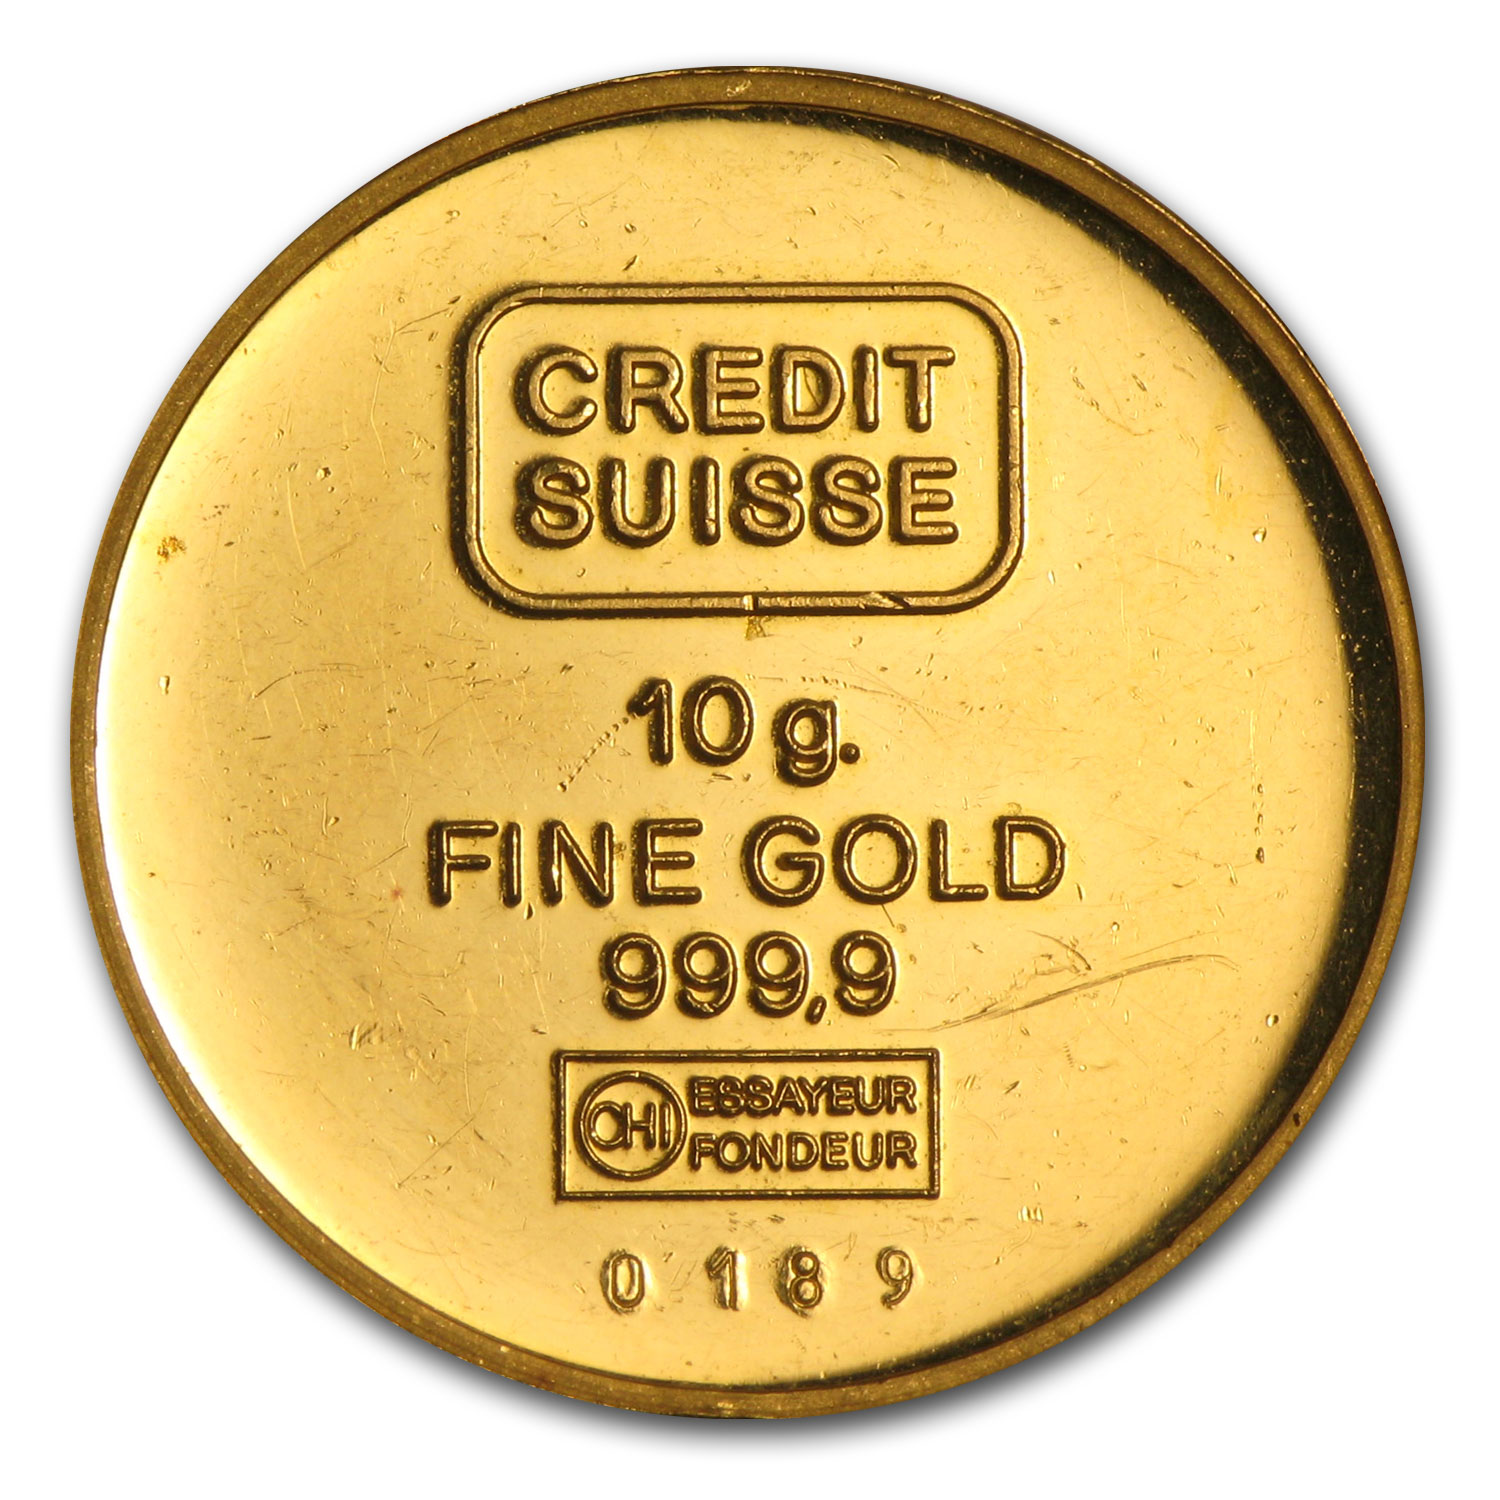 10 gram Gold Round - Credit Suisse Virgin Islands